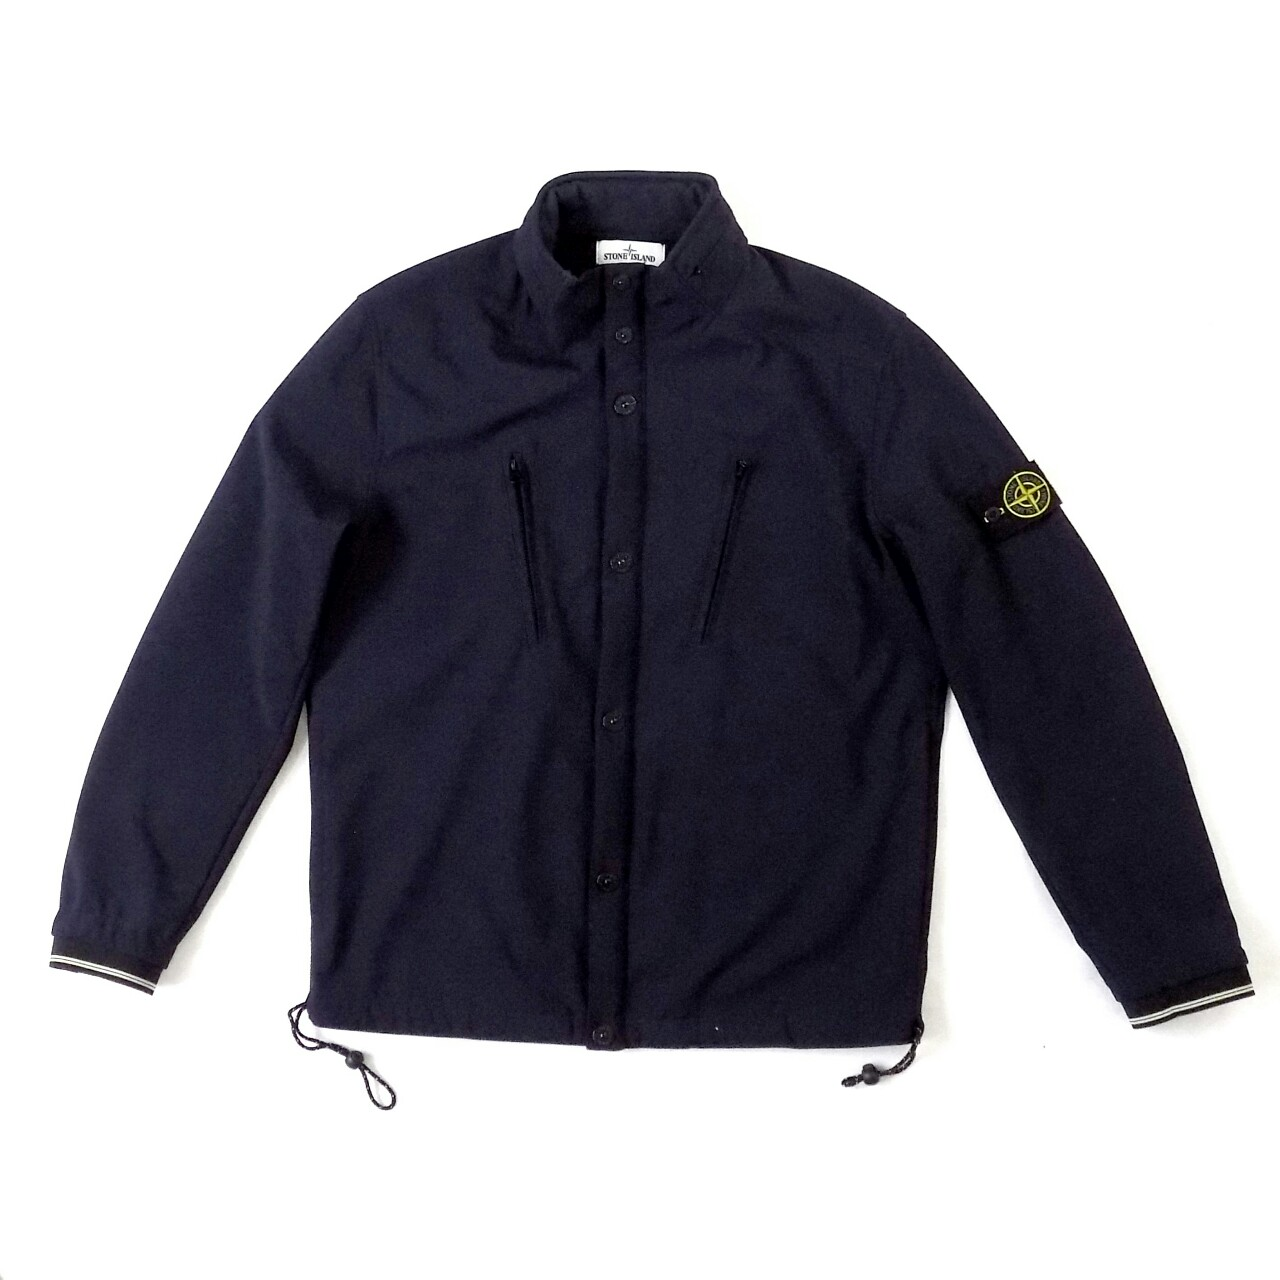 a49e8ae20 Stone Island Soft Shell-R hooded jacket in navy.... - Depop